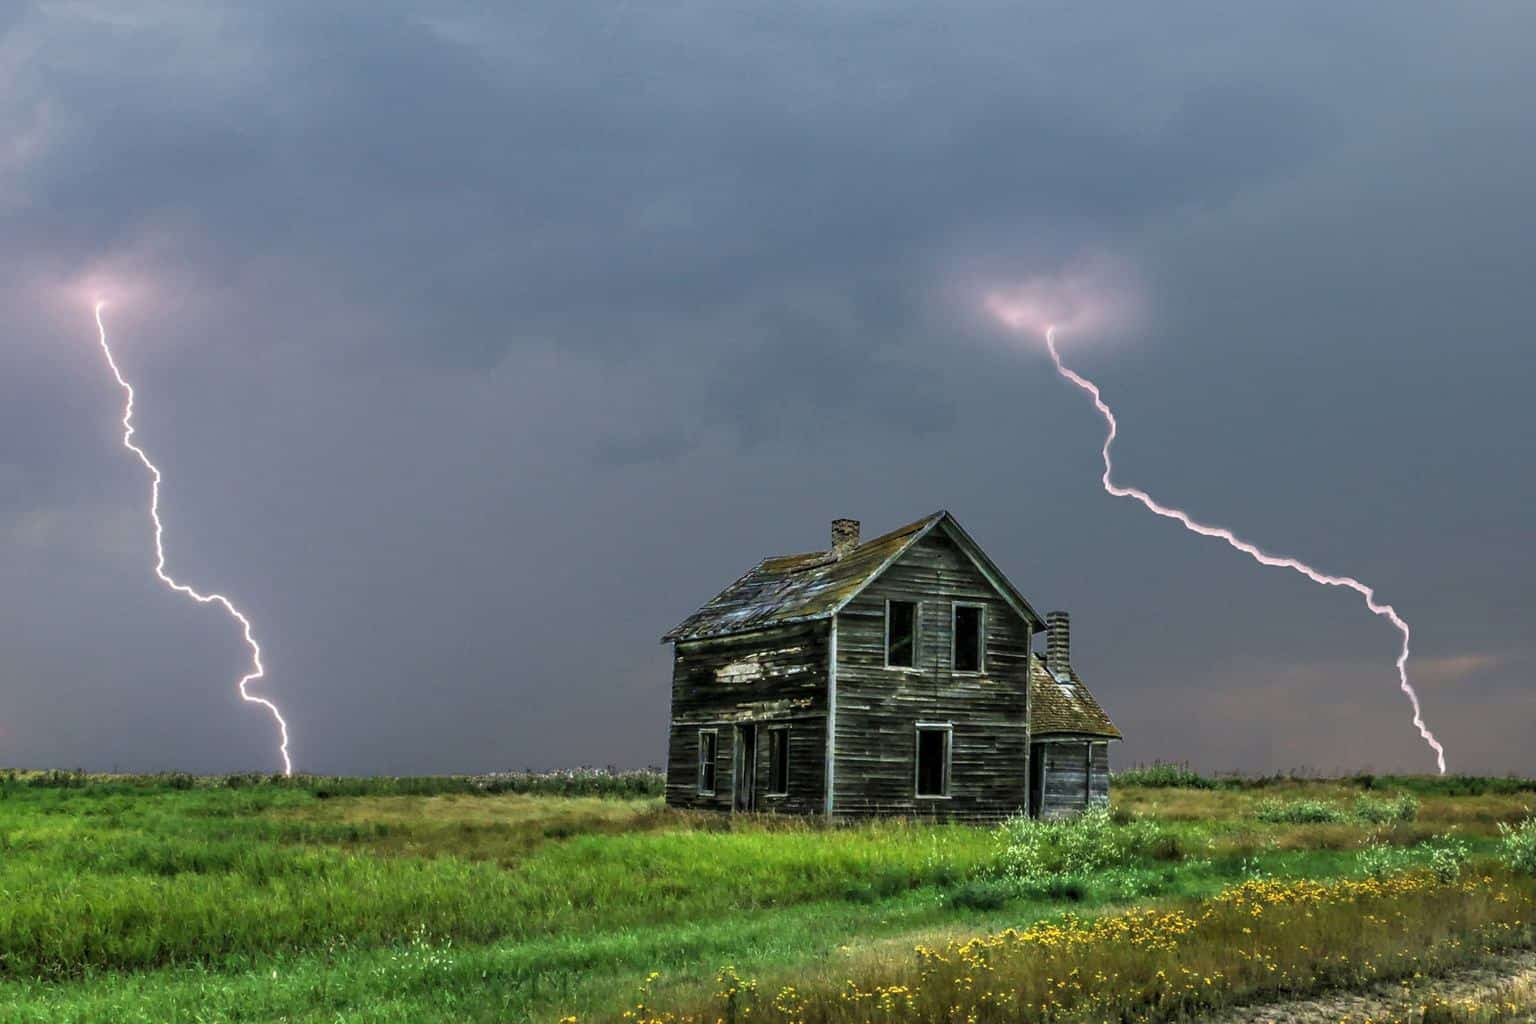 This is one of my favorite lightning photos that I have ever taken. A double bolt that even left the house in the foreground mouth open and wide eyed in awe.